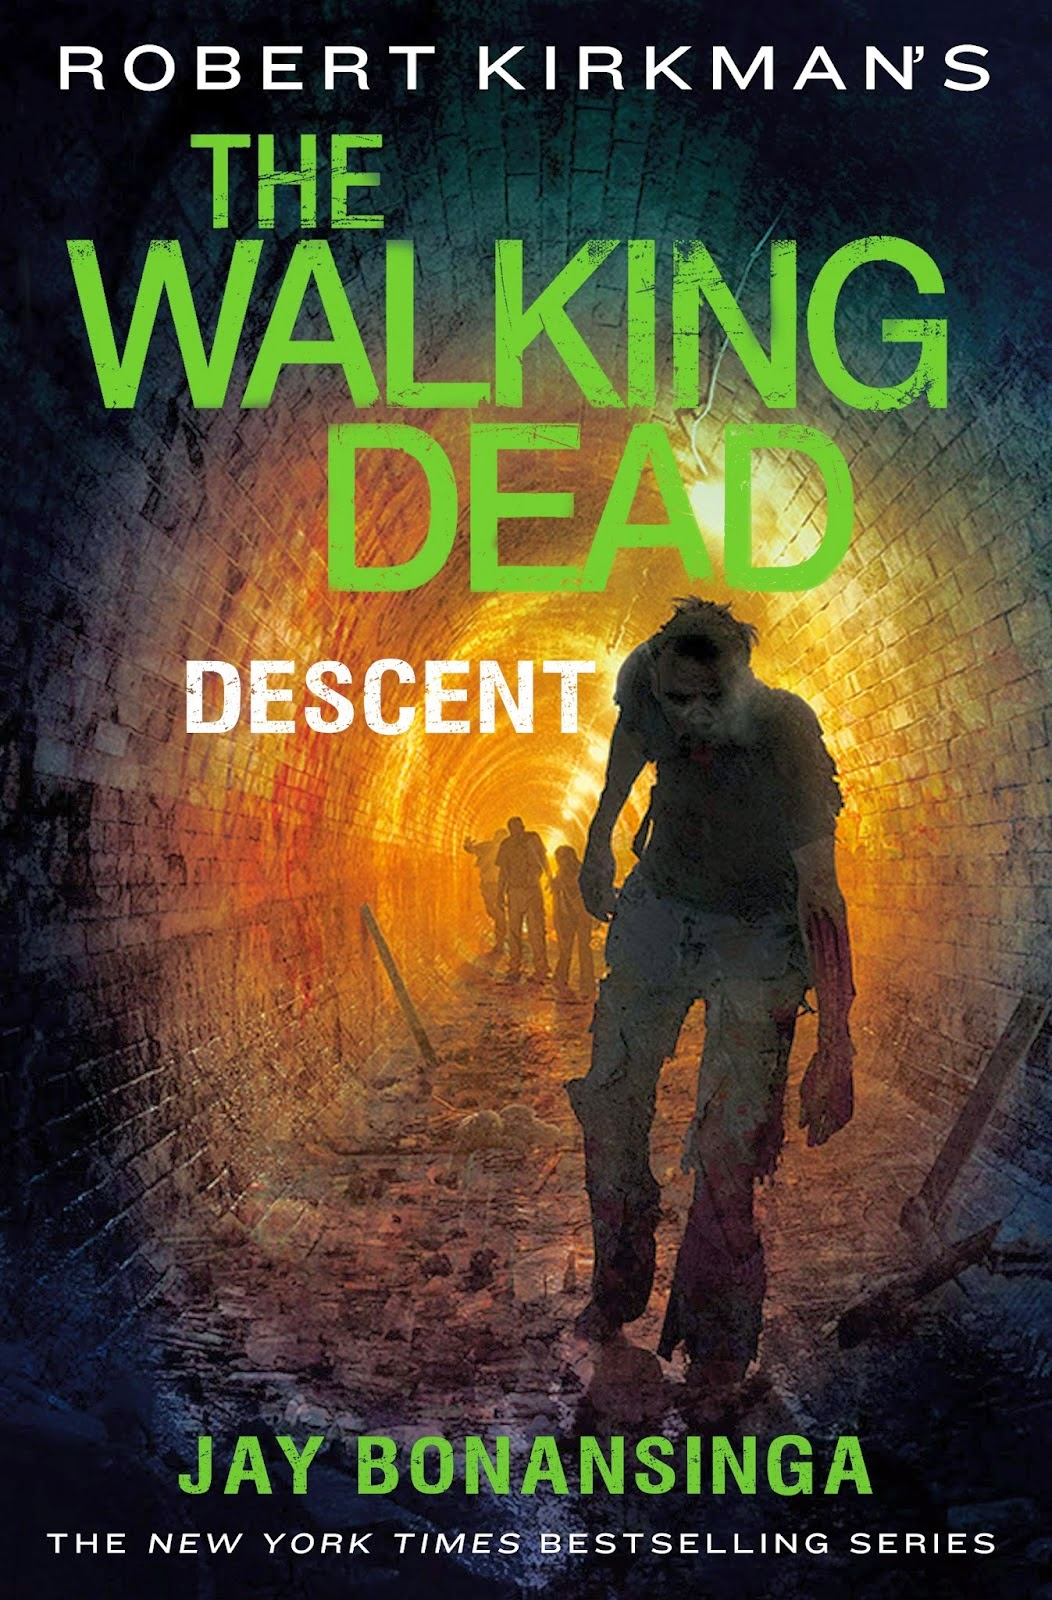 The Walking Dead Descent